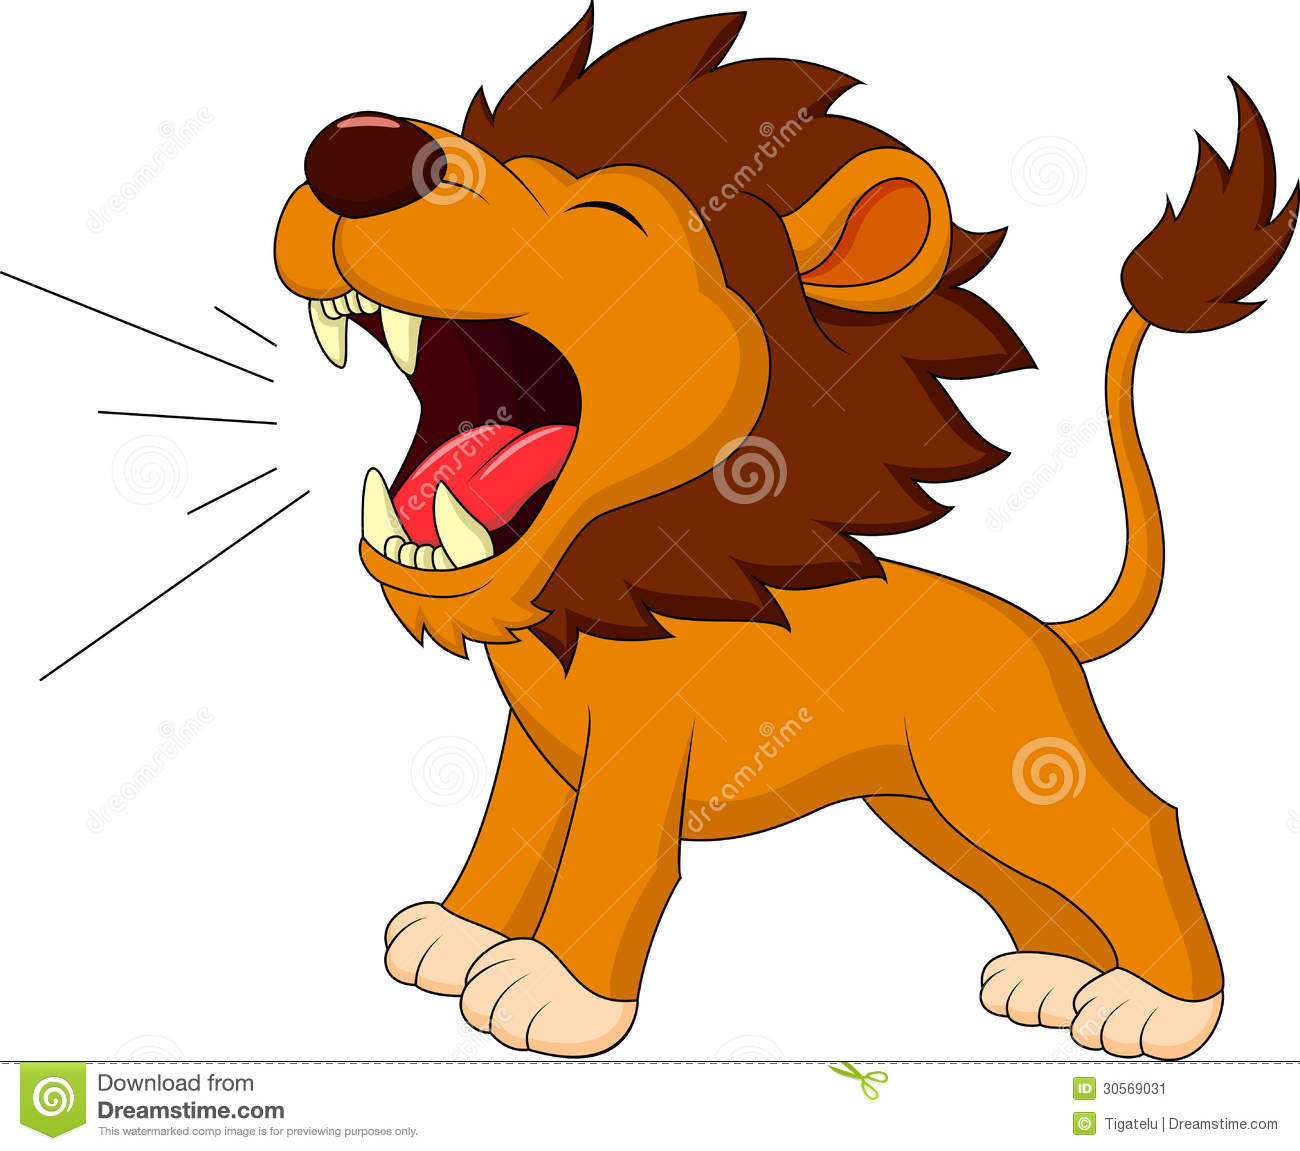 Lion Cartoon Roaring Illustration 30569031 - Megapixl for Angry Lion Animation  59nar